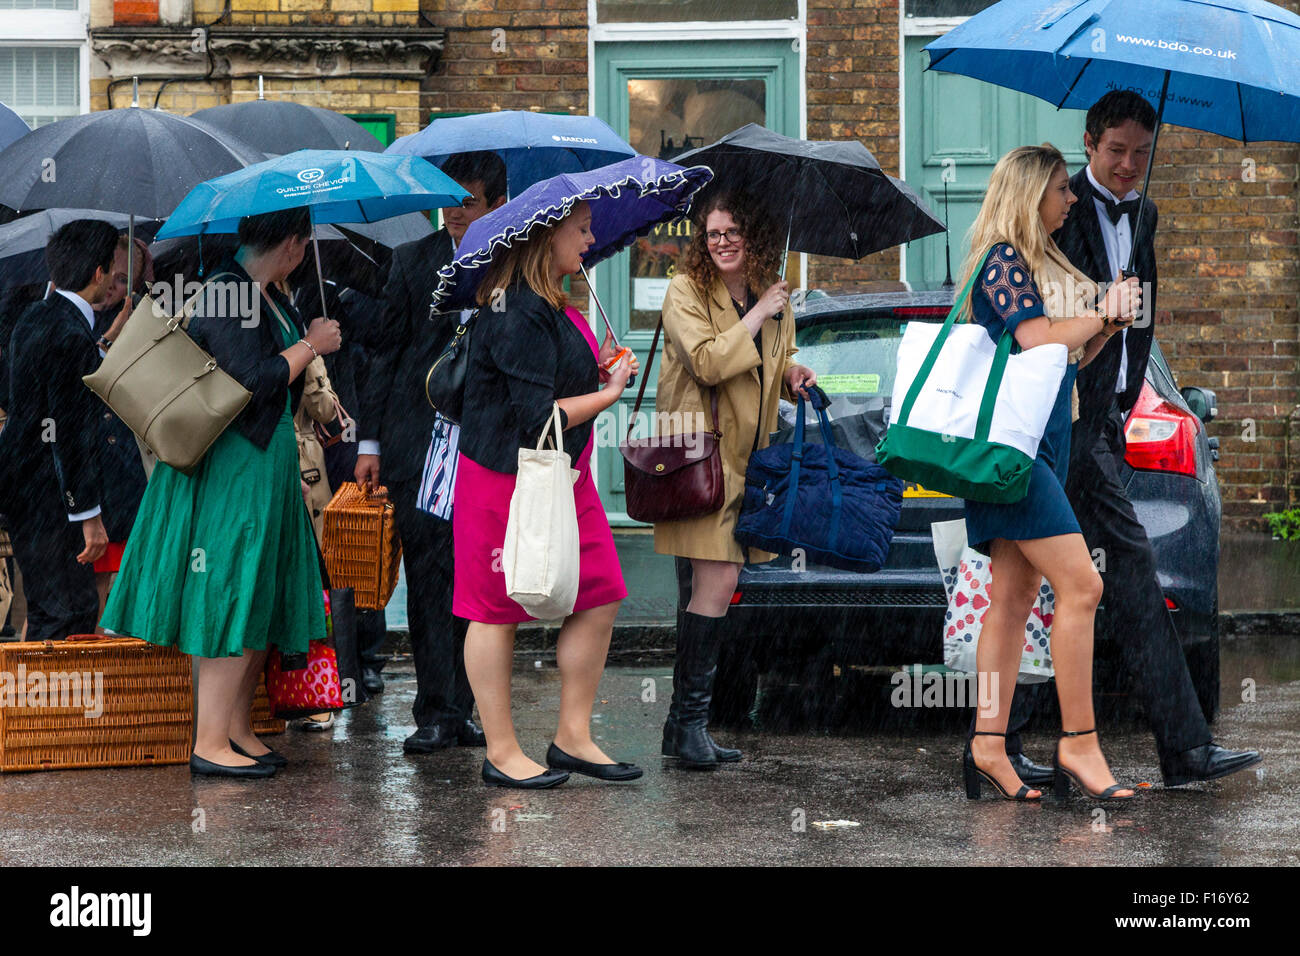 Young Opera Fans Wait In The Pouring Rain At Lewes Station For A Bus Take Them To Glyndebourne Opera House, Lewes, Stock Photo